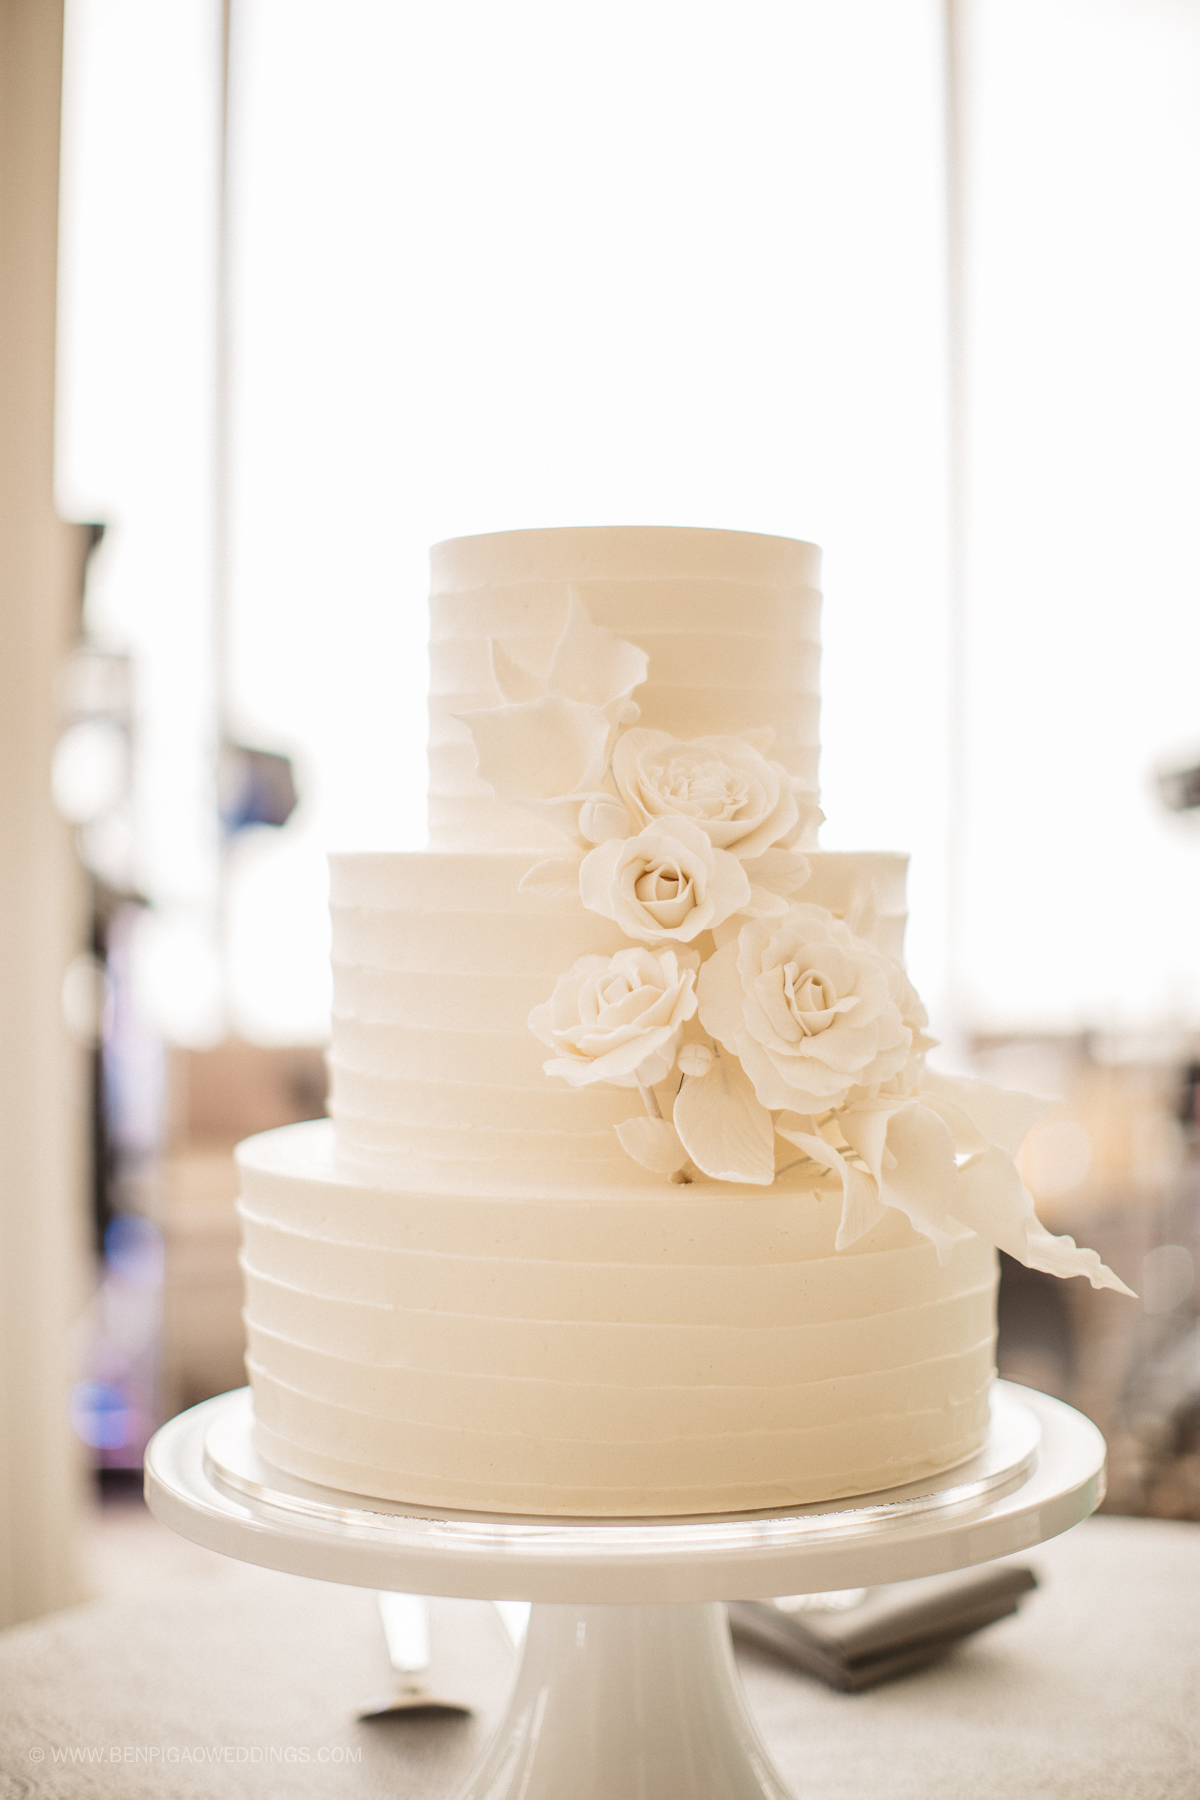 Simple All White Wedding Cakes - Portland, Oregon Waverley Country Club Wedding